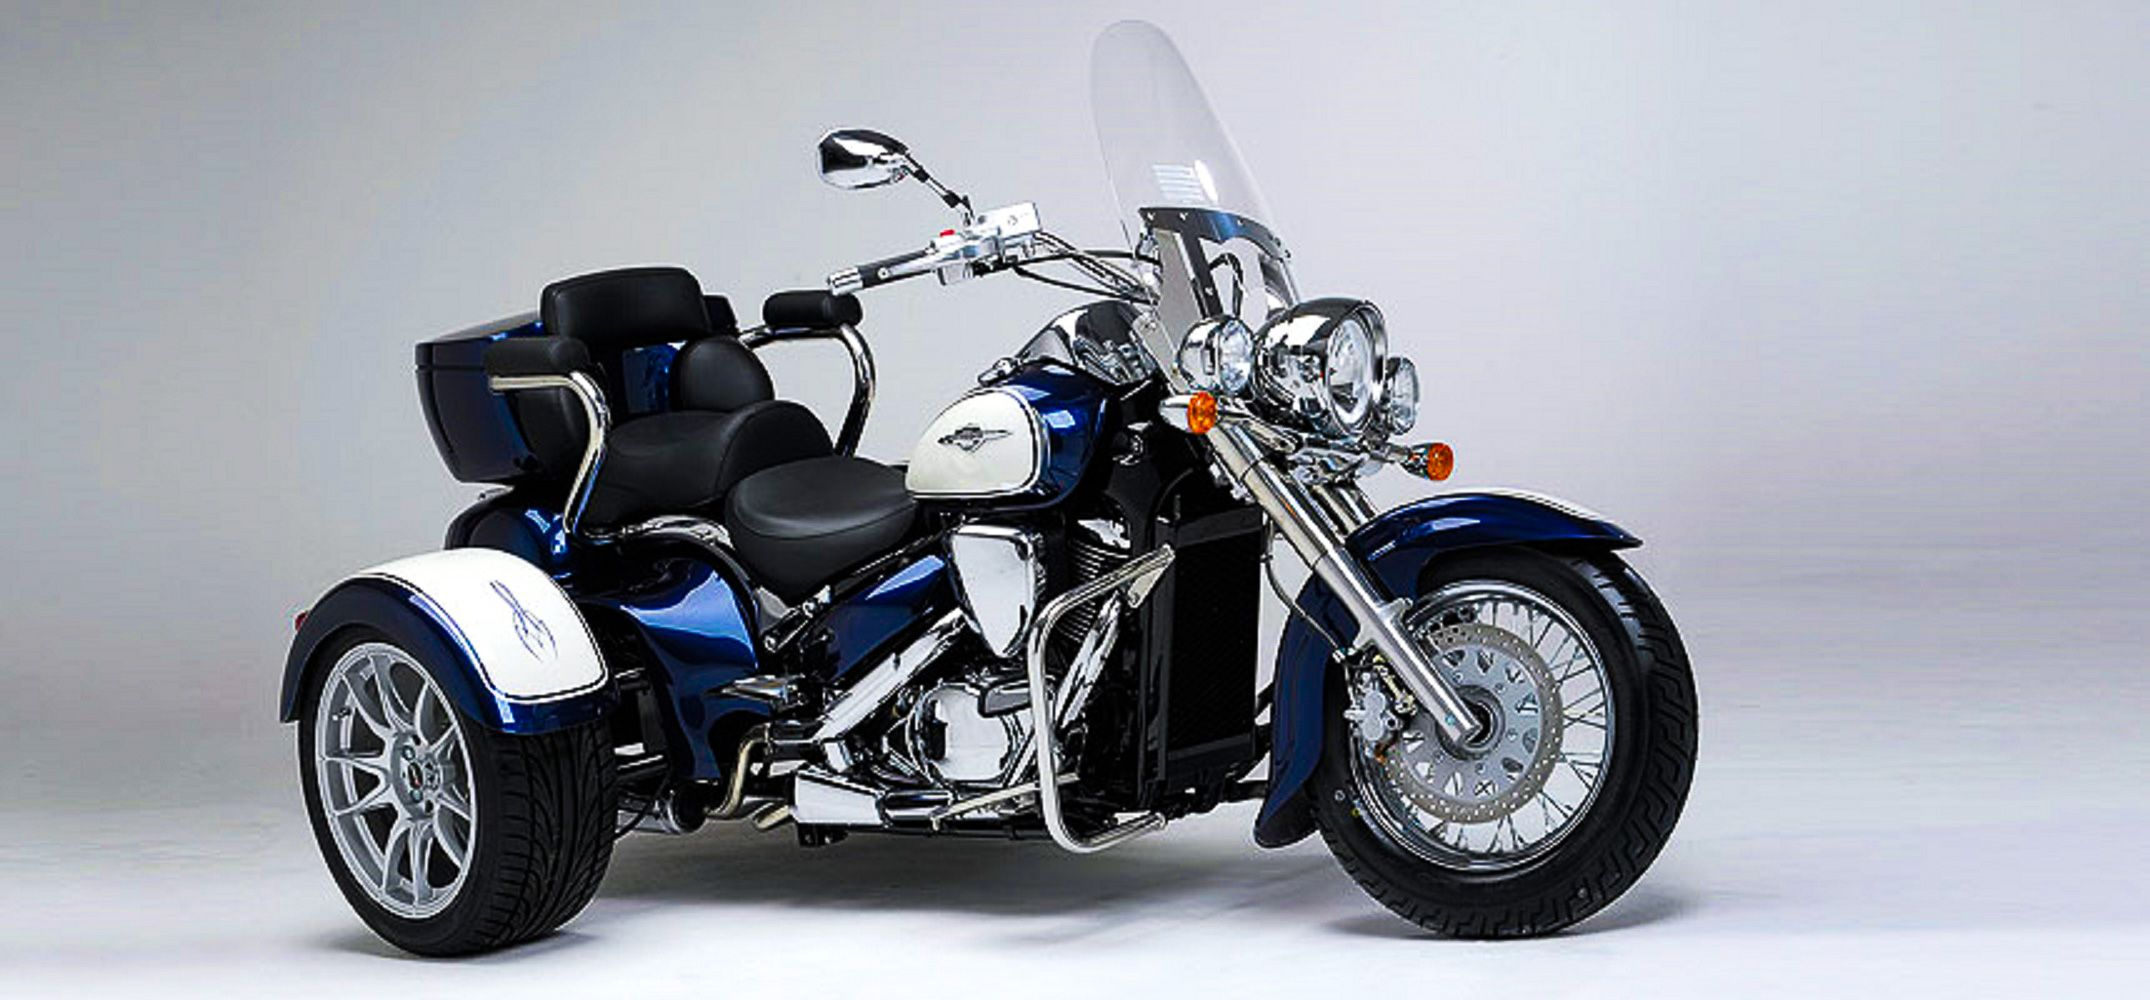 suzuki intruder ct800s rewaco trike boom rewaco trikes. Black Bedroom Furniture Sets. Home Design Ideas